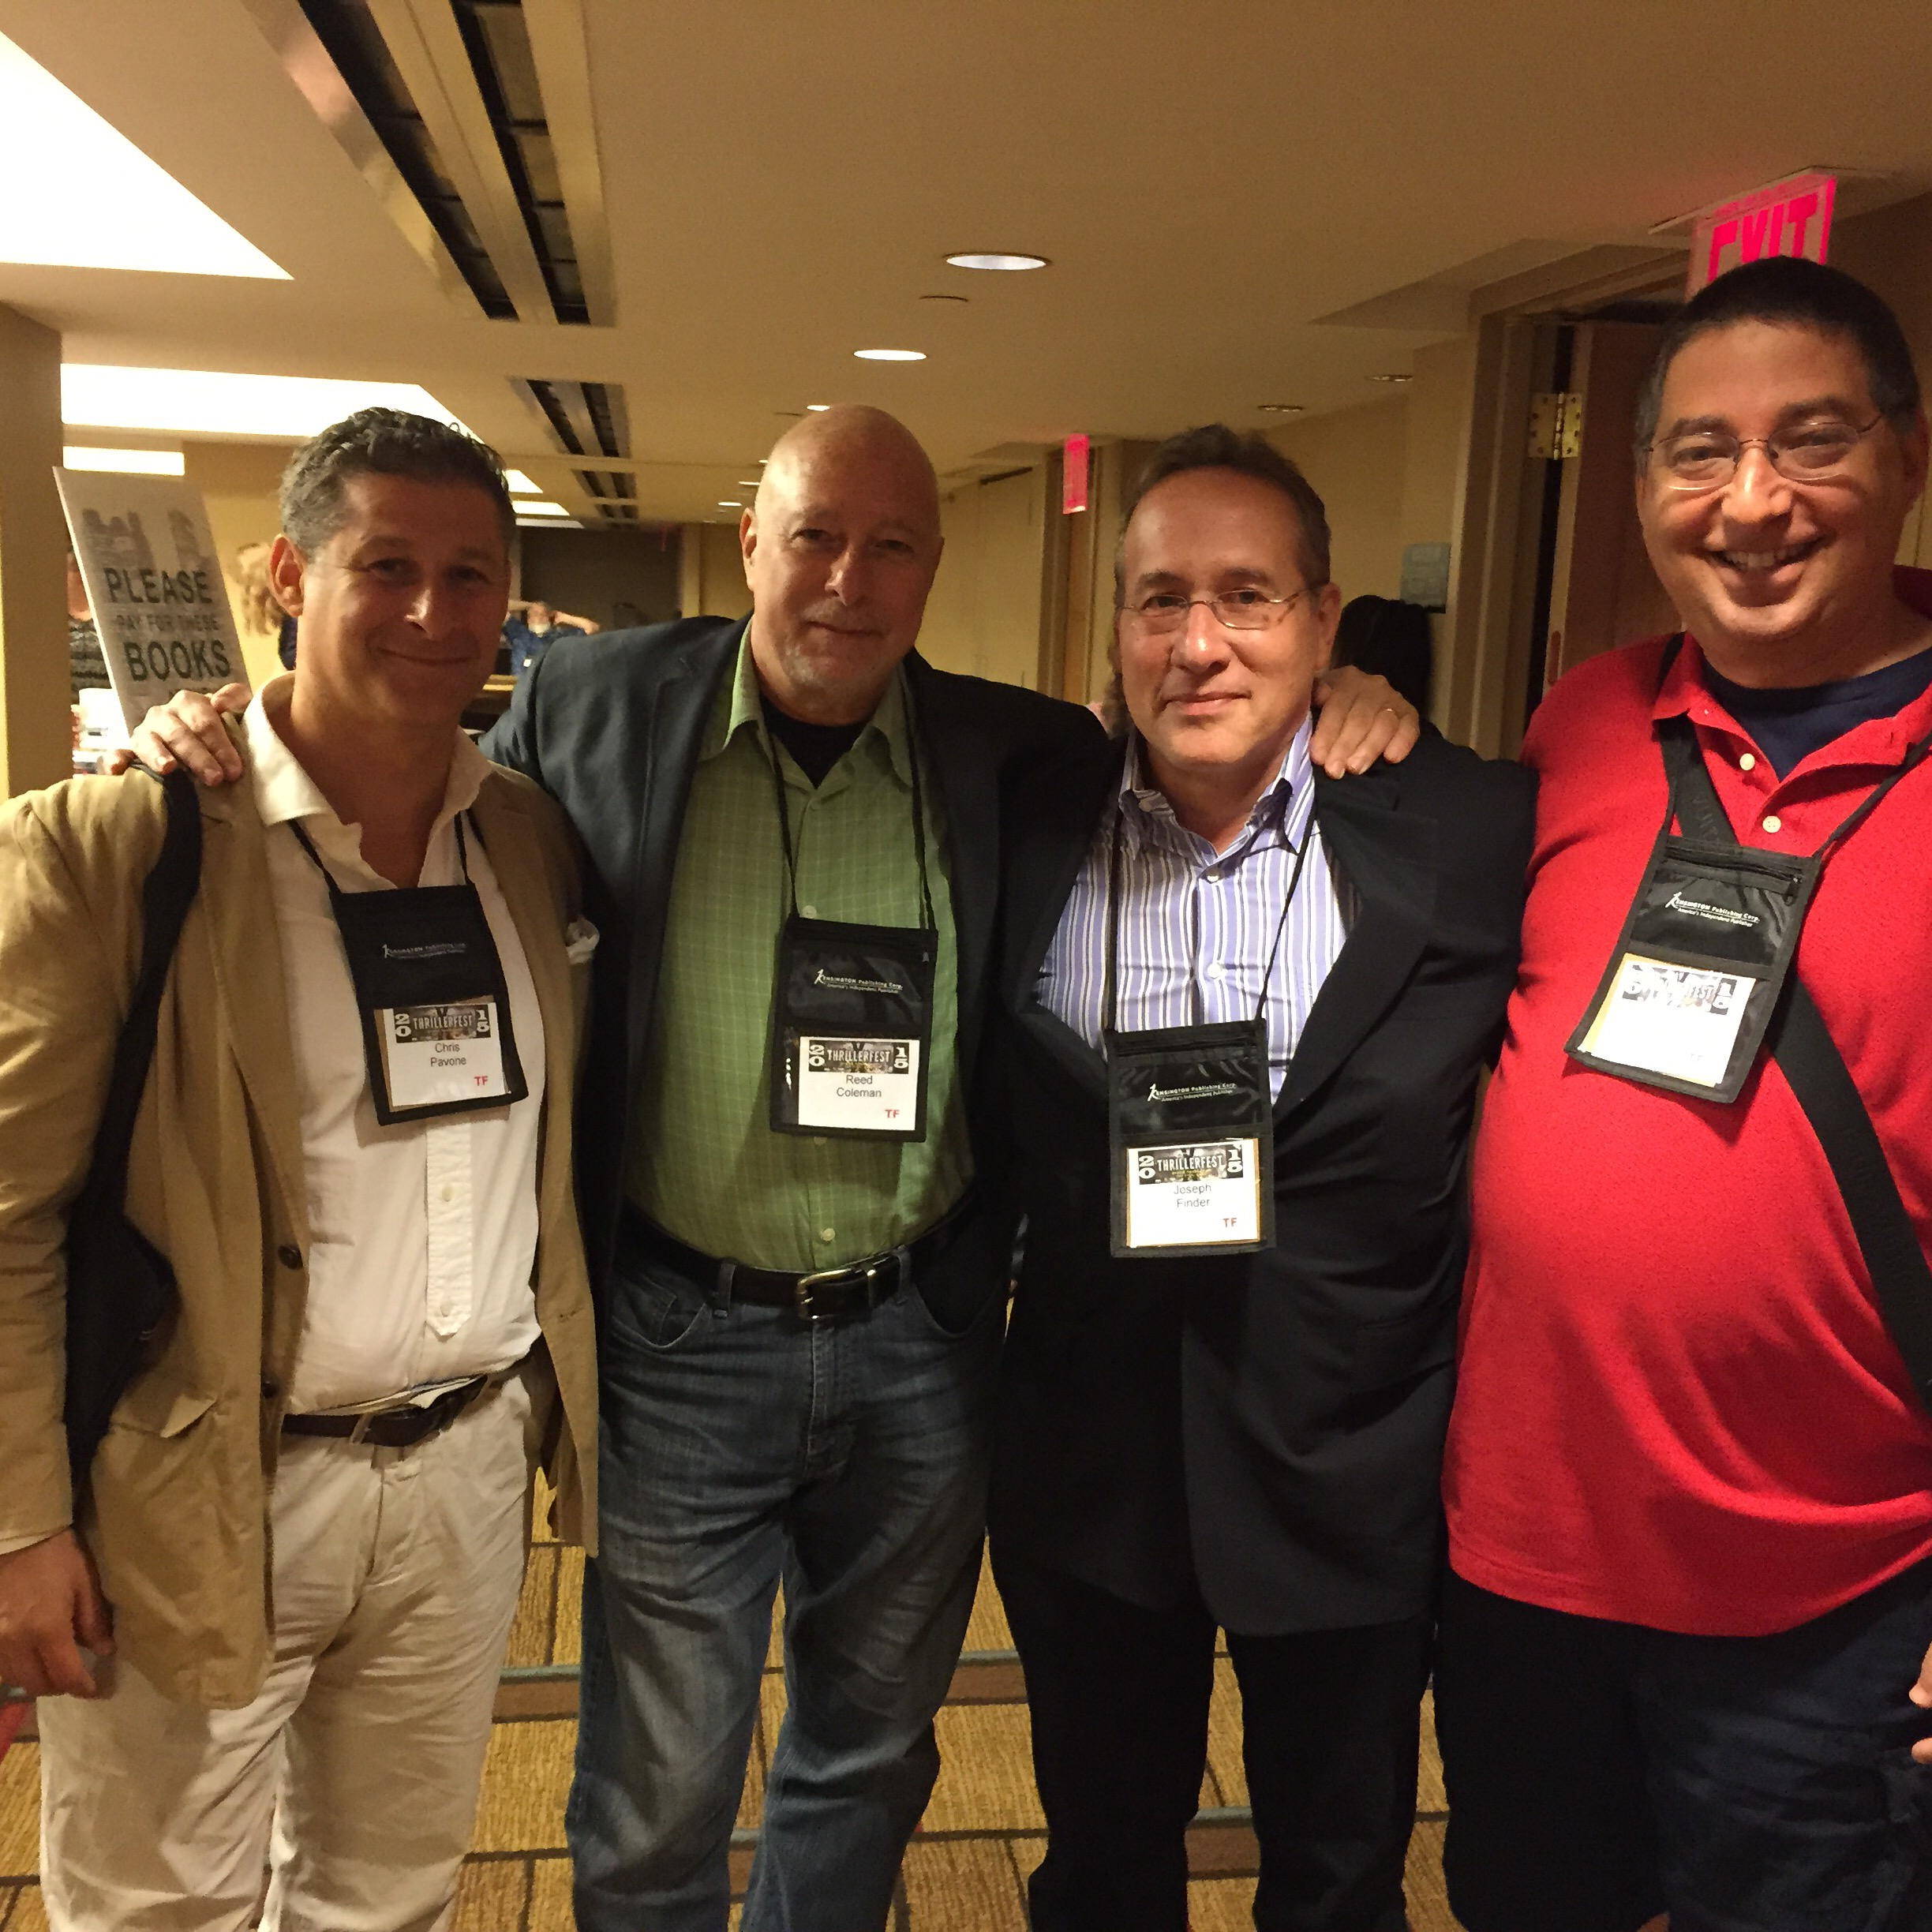 Chris Povone, Reed Farrel Coleman, Joseph Finder and Lee at Thrillerfest 2015